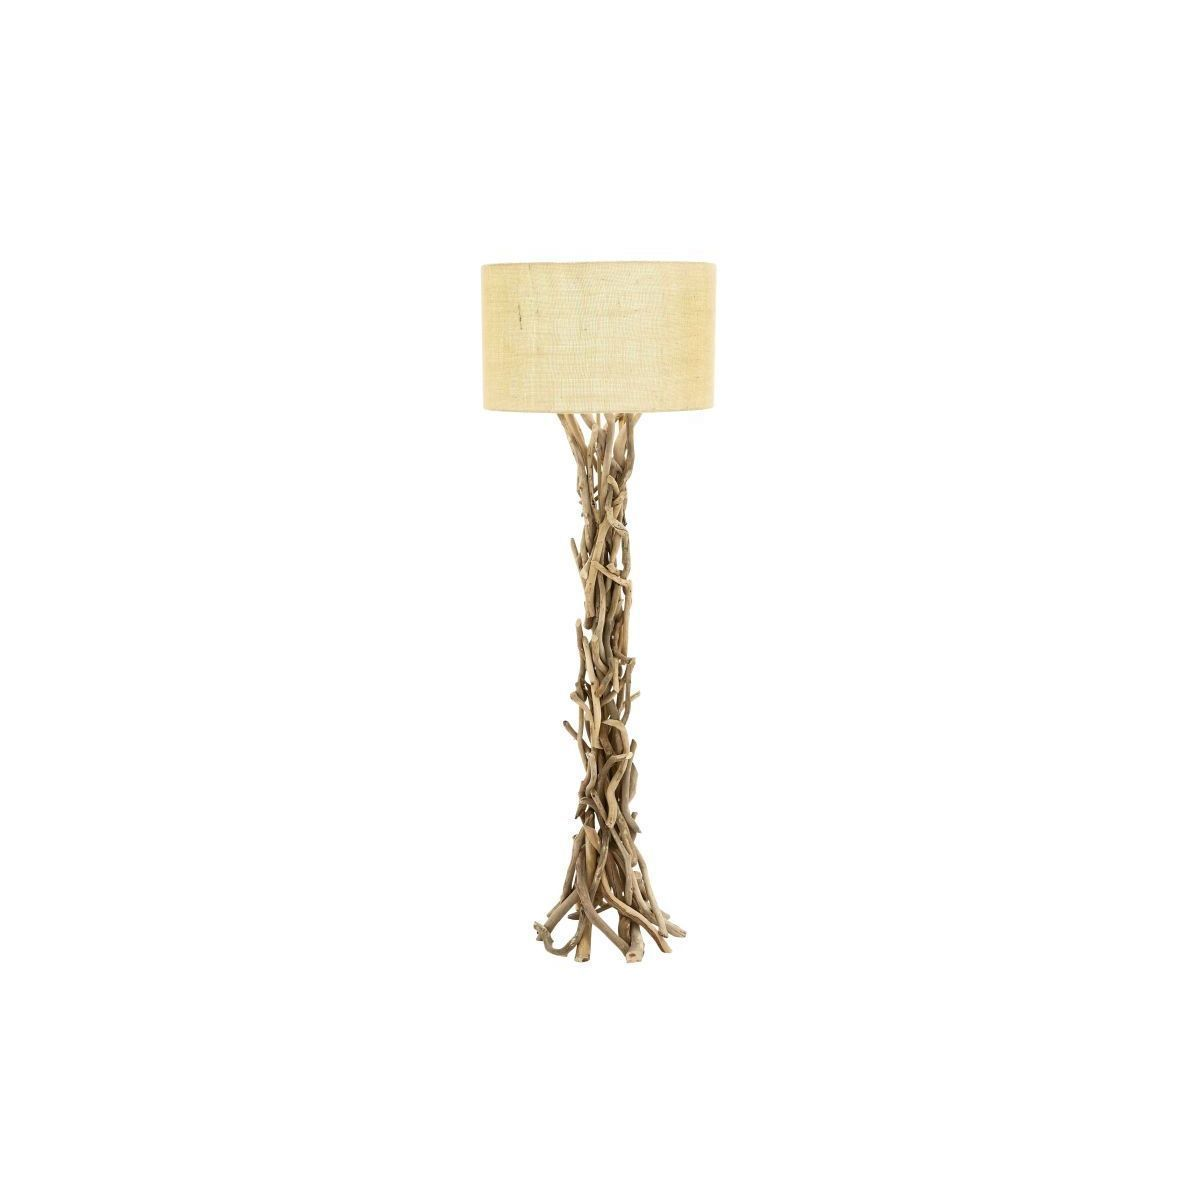 lamp design glamorous stylish ideas driftwood floor furniture diy